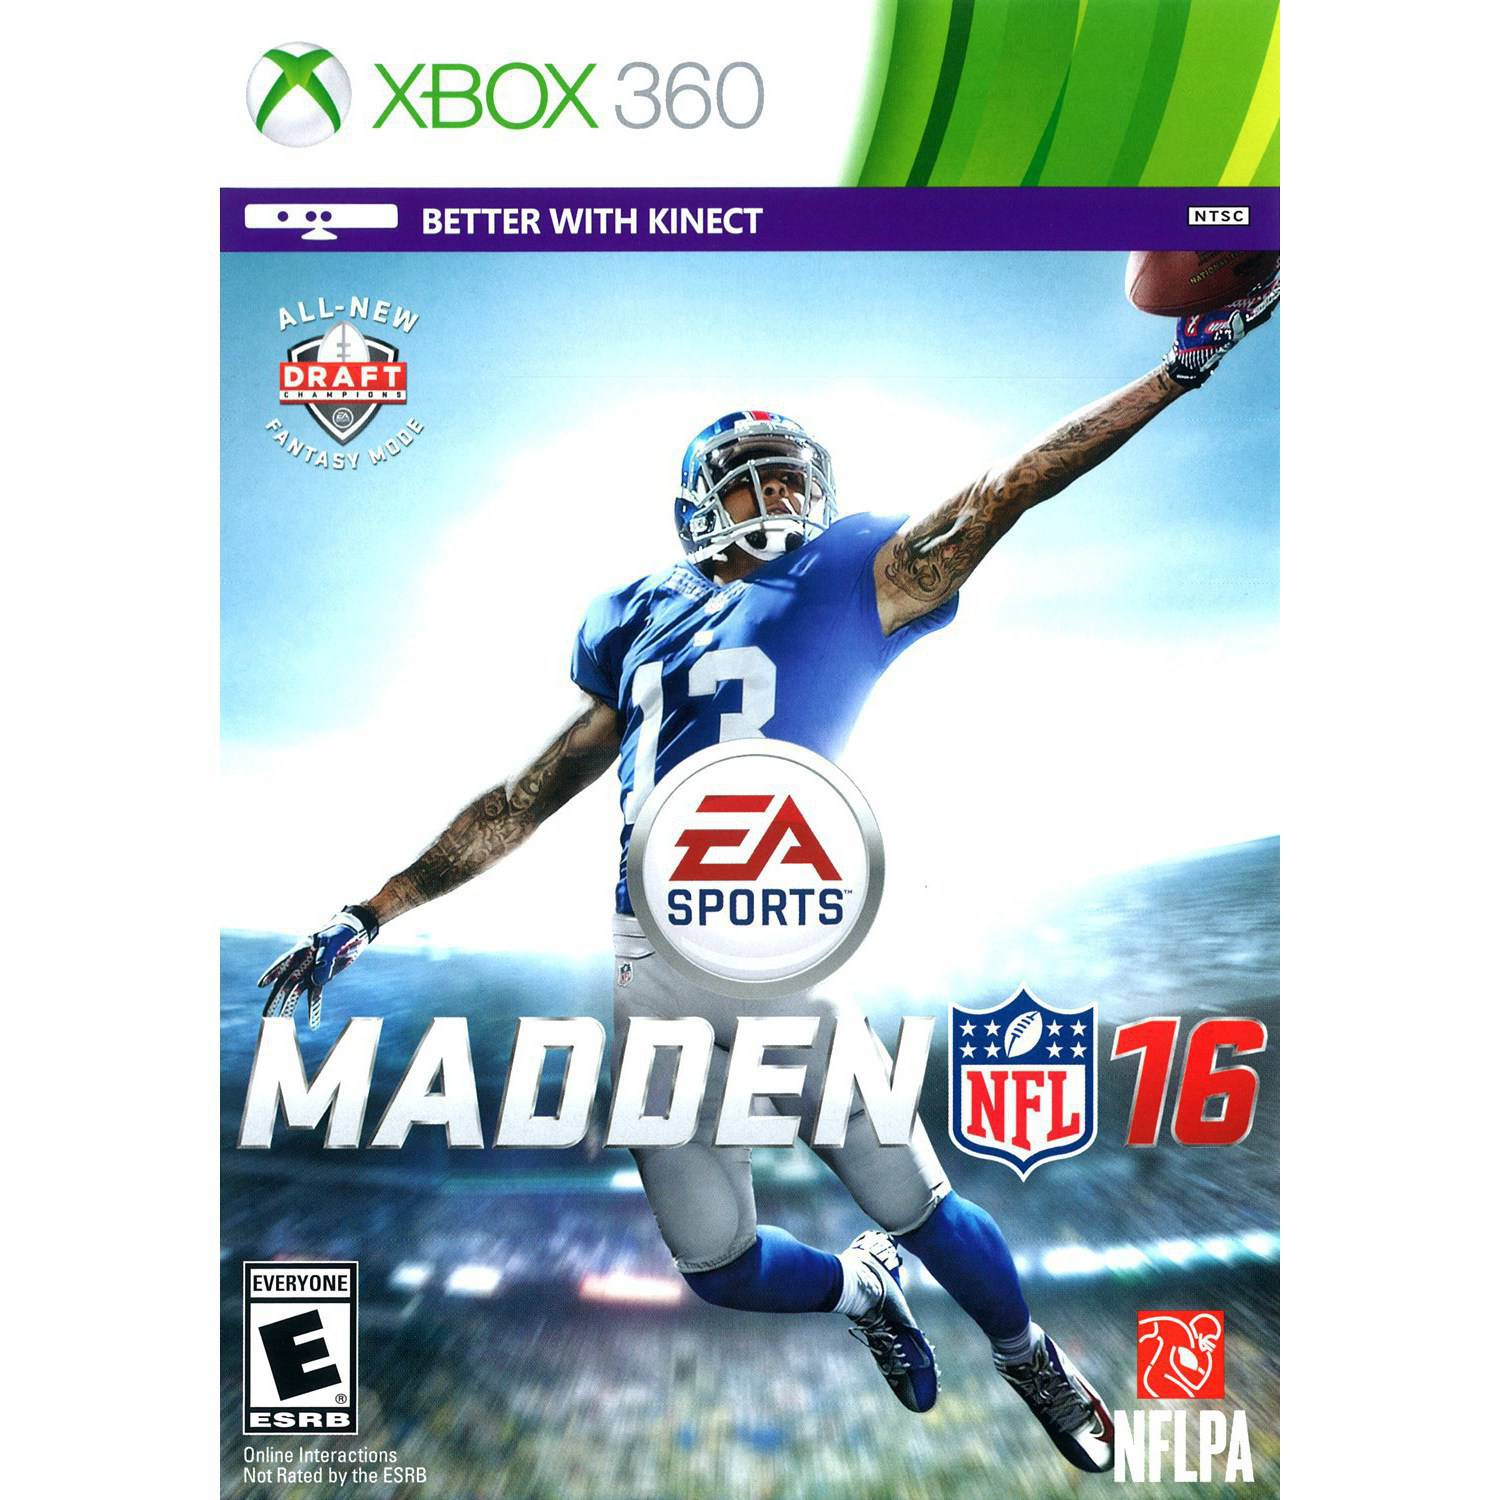 Madden NFL 16 (Xbox 360) - Pre-Owned